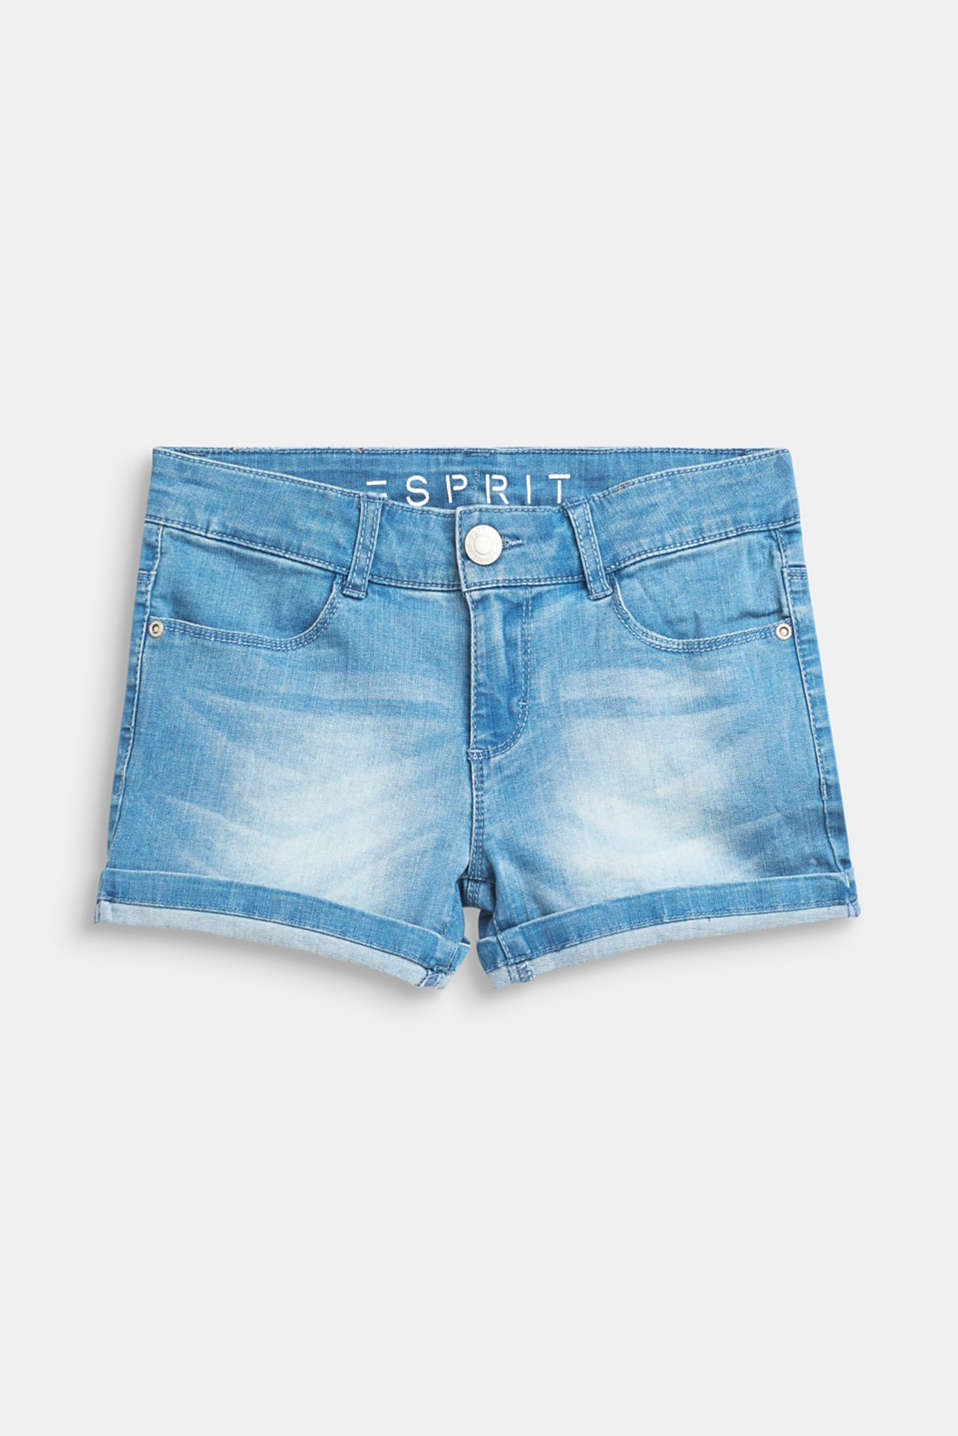 Stretch denim shorts with turn-ups and an adjustable waistband, LCBLUE LIGHT WAS, detail image number 0